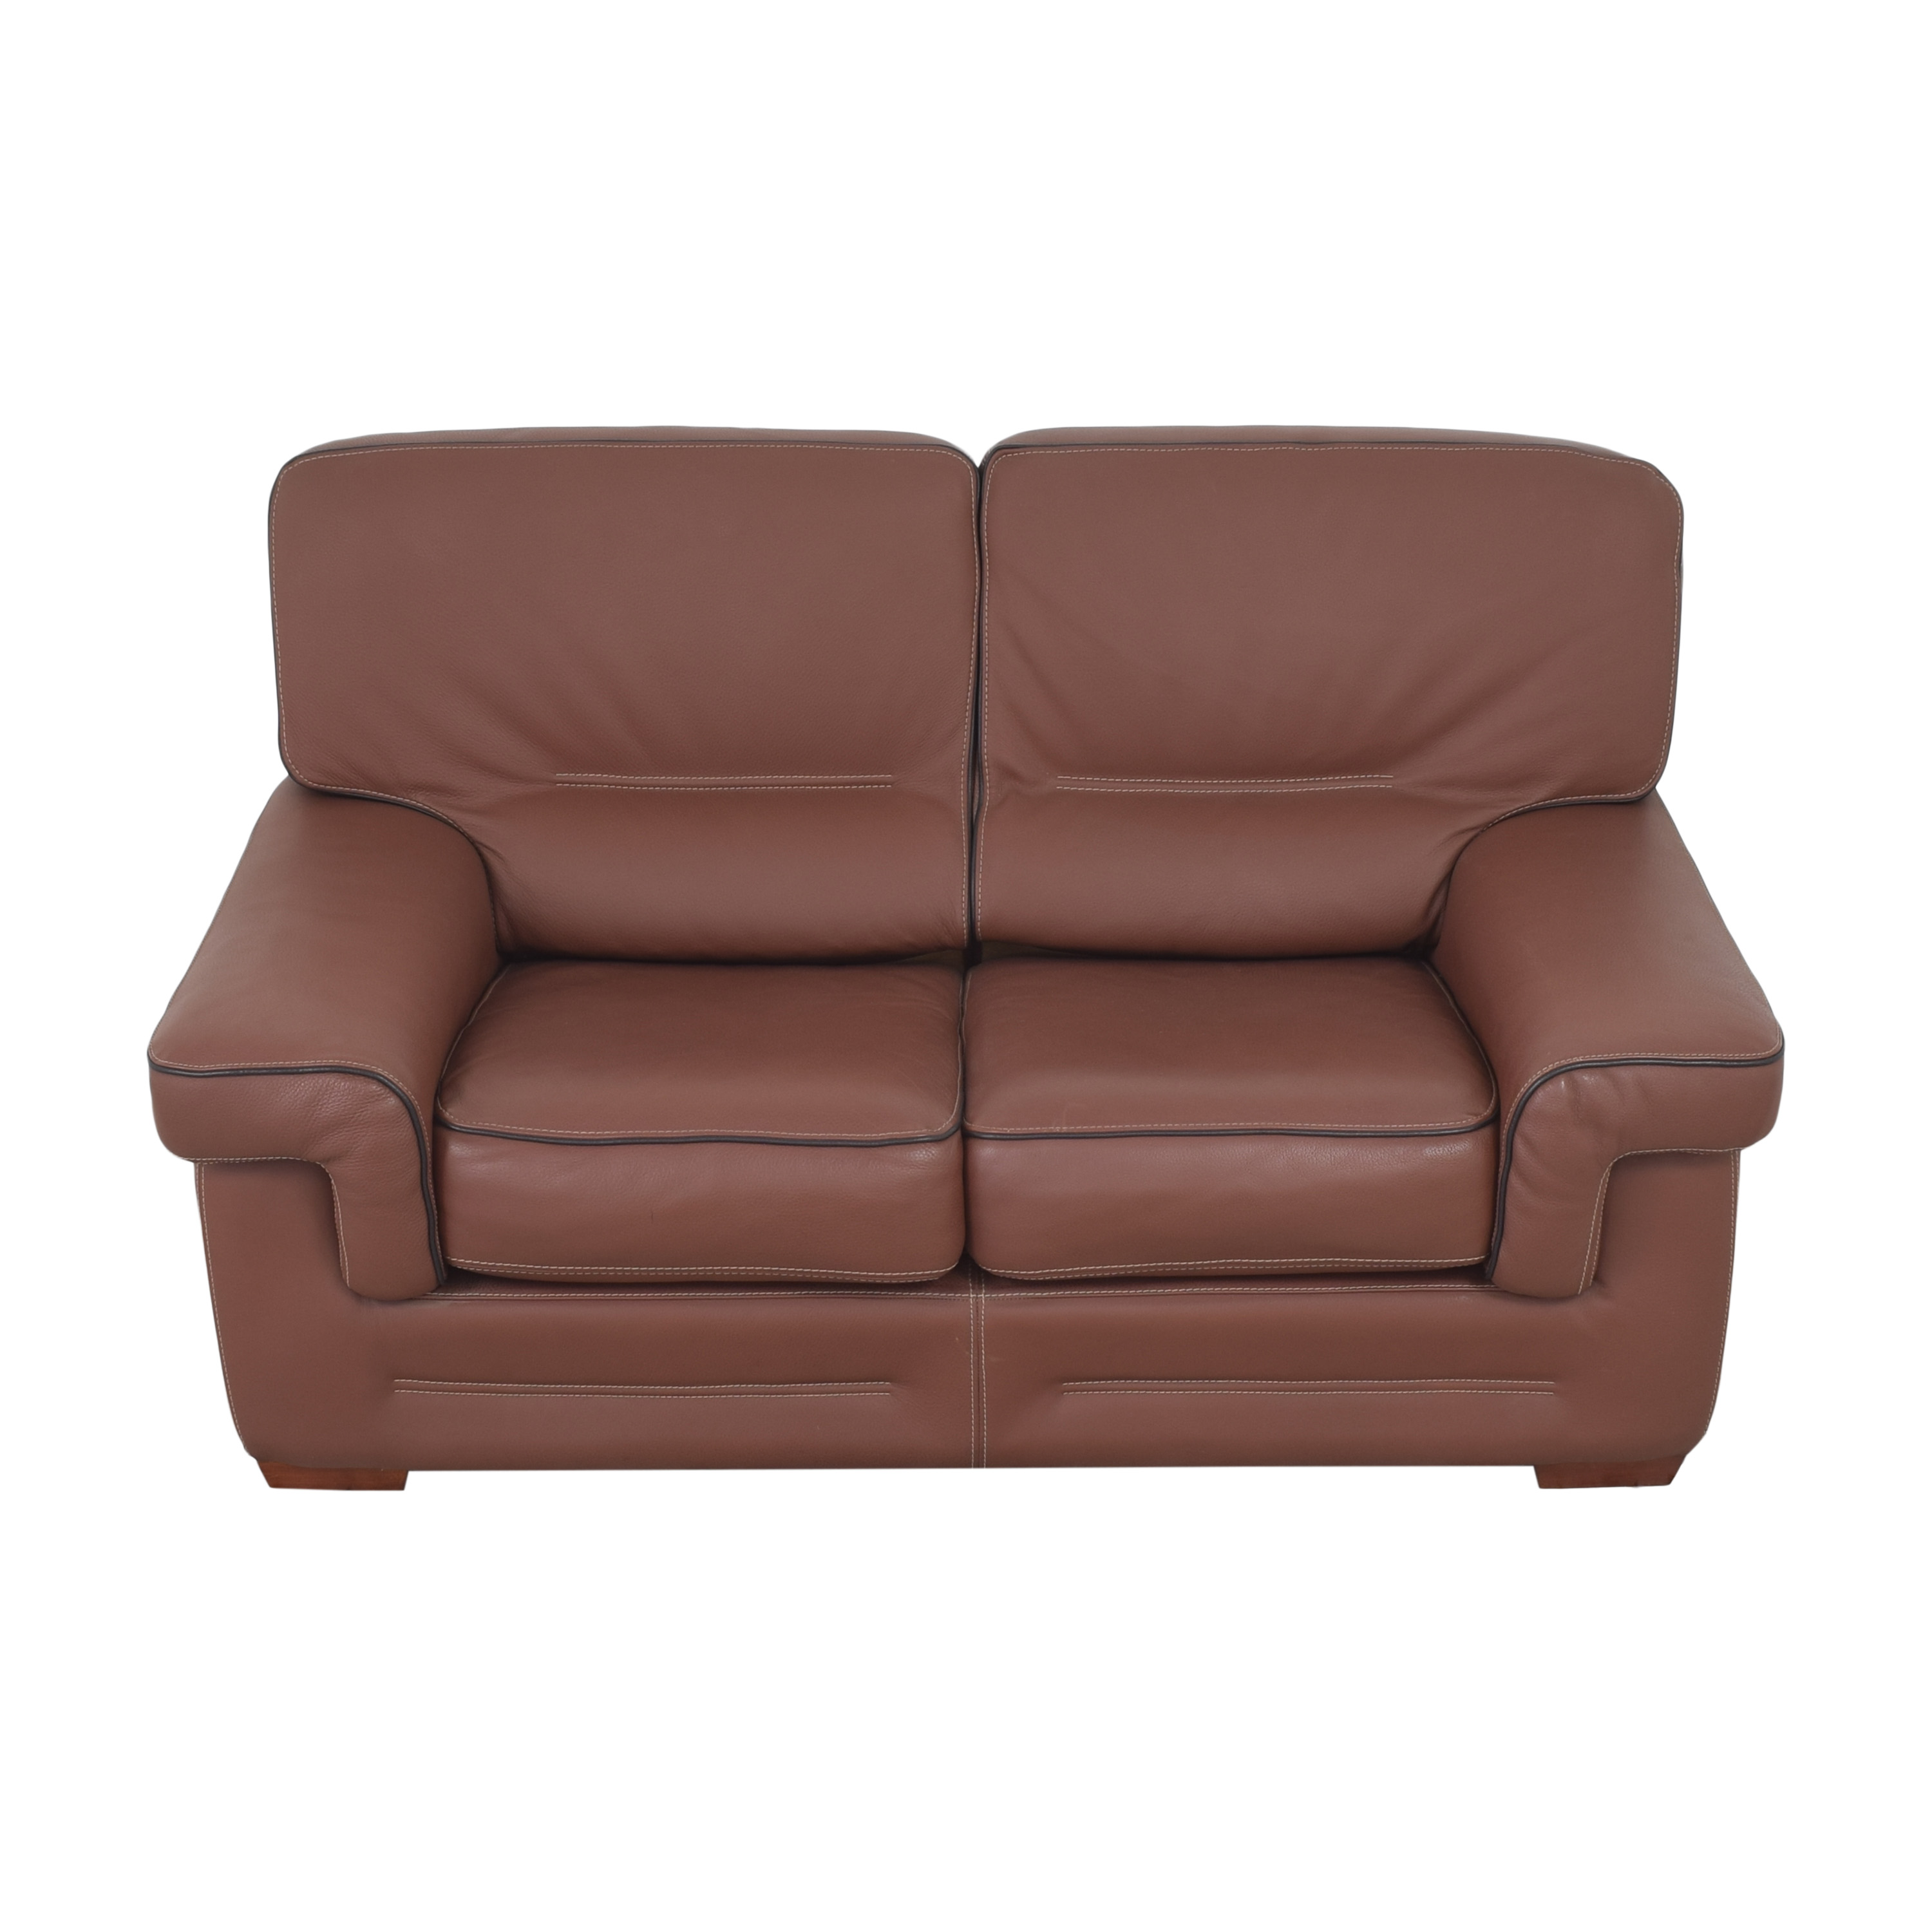 Firenze Design Firenze Design Loveseat discount